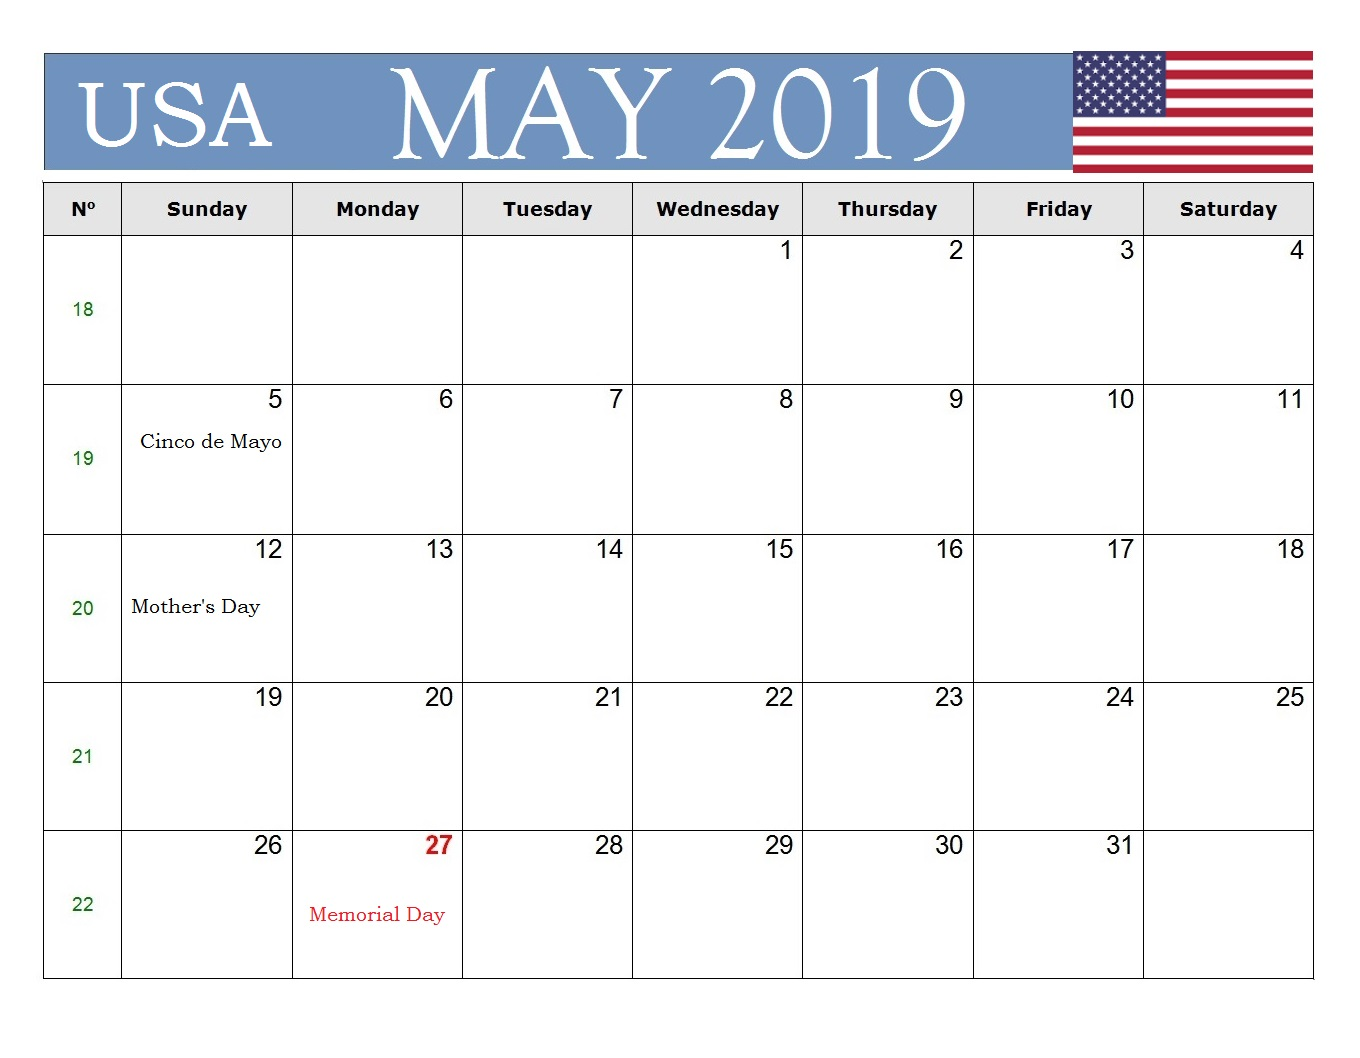 USA Federal May 2019 Holidays Calendar